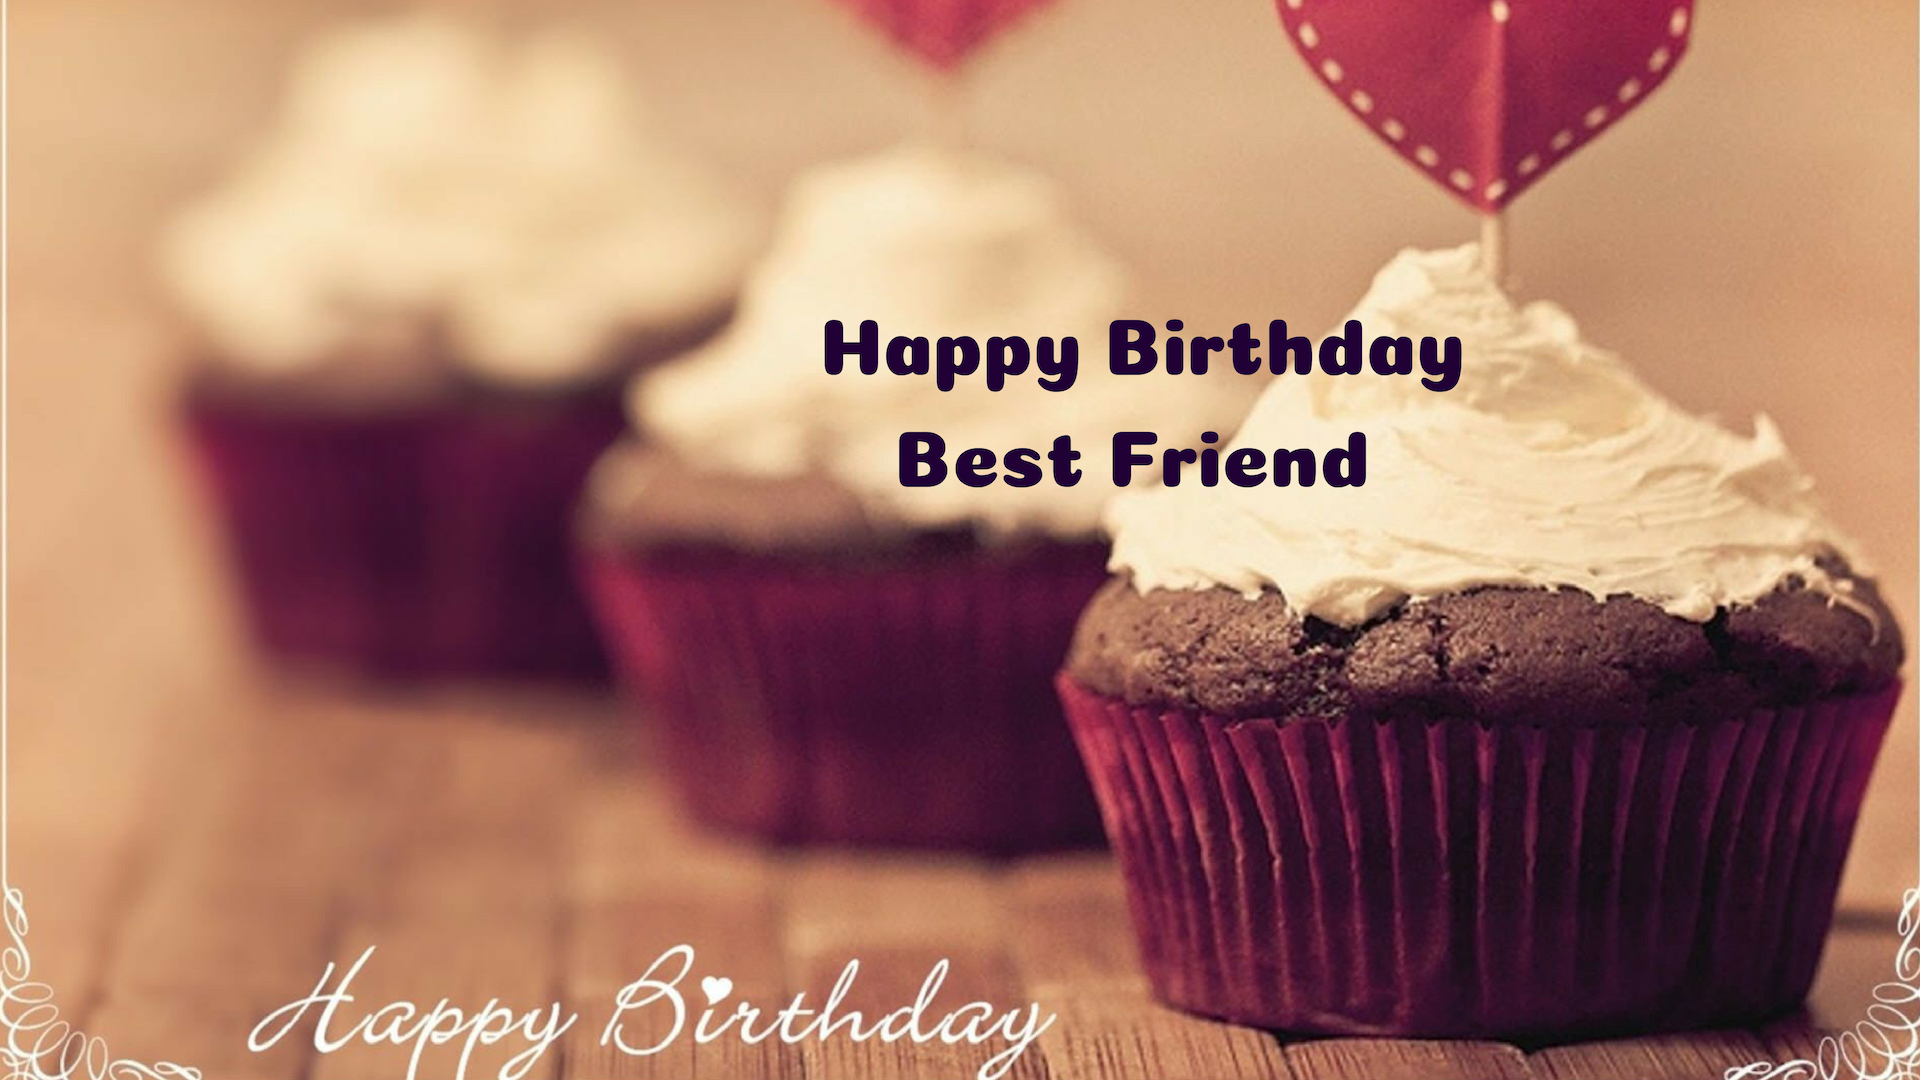 Happy Birthday Best Friend Background Images Download Happy Birthday To Sister Daughter 1920x1080 Wallpaper Teahub Io